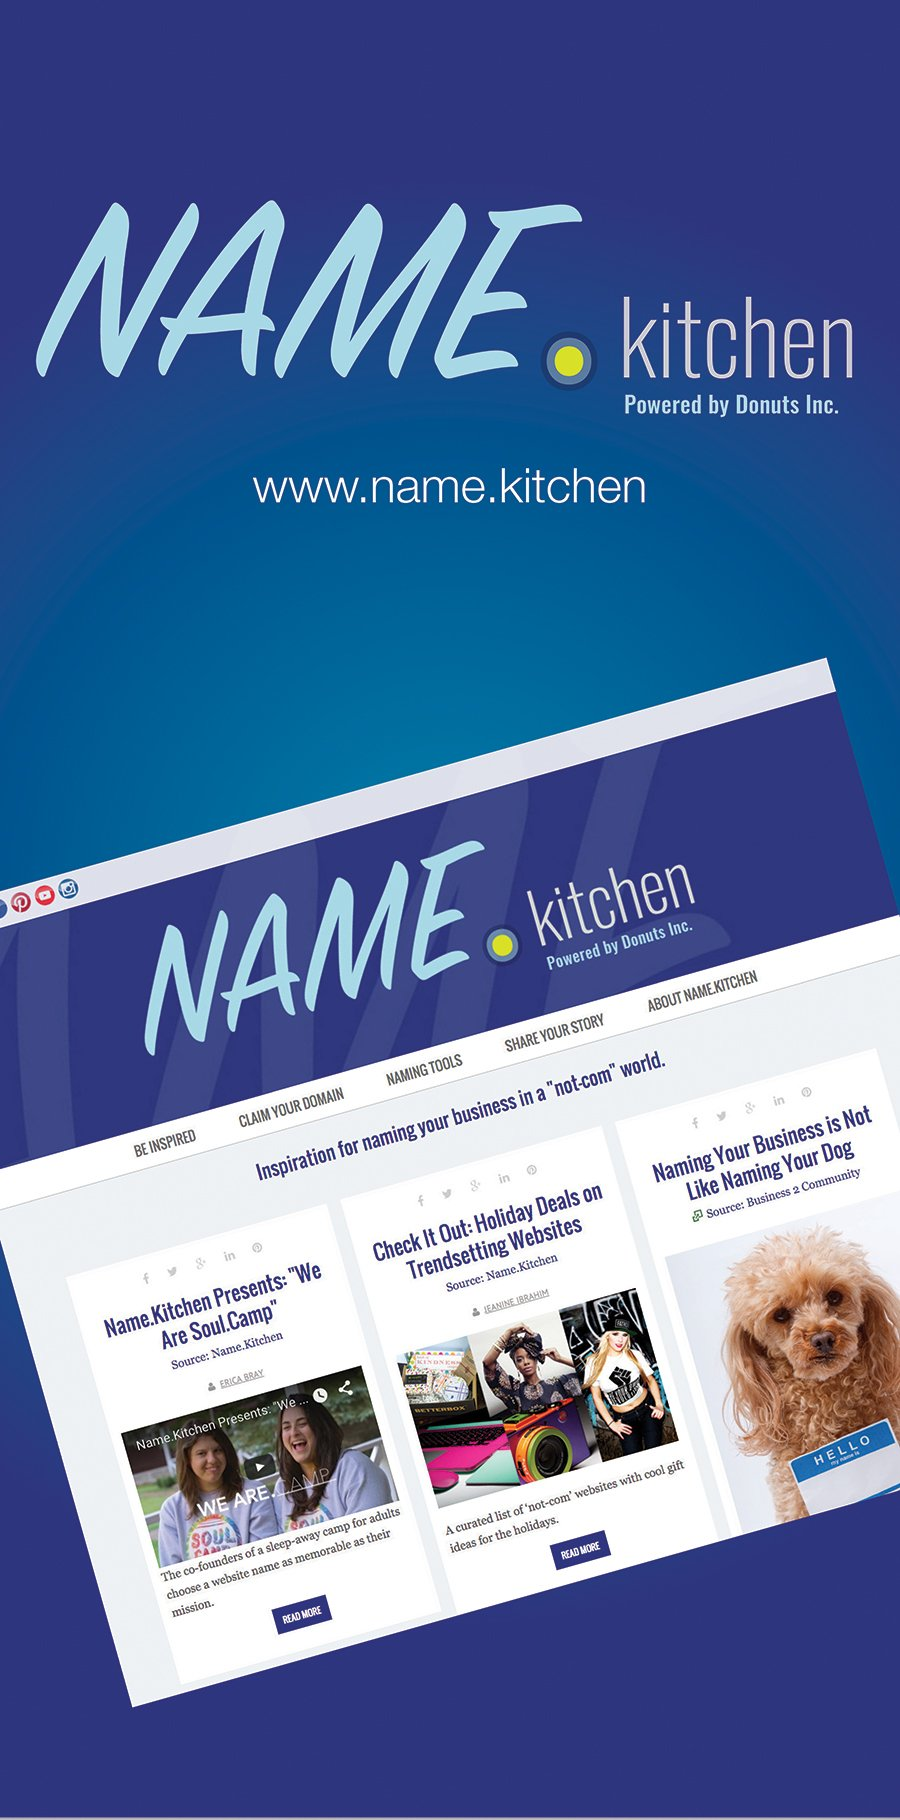 Name.Kitchen Banner Stand